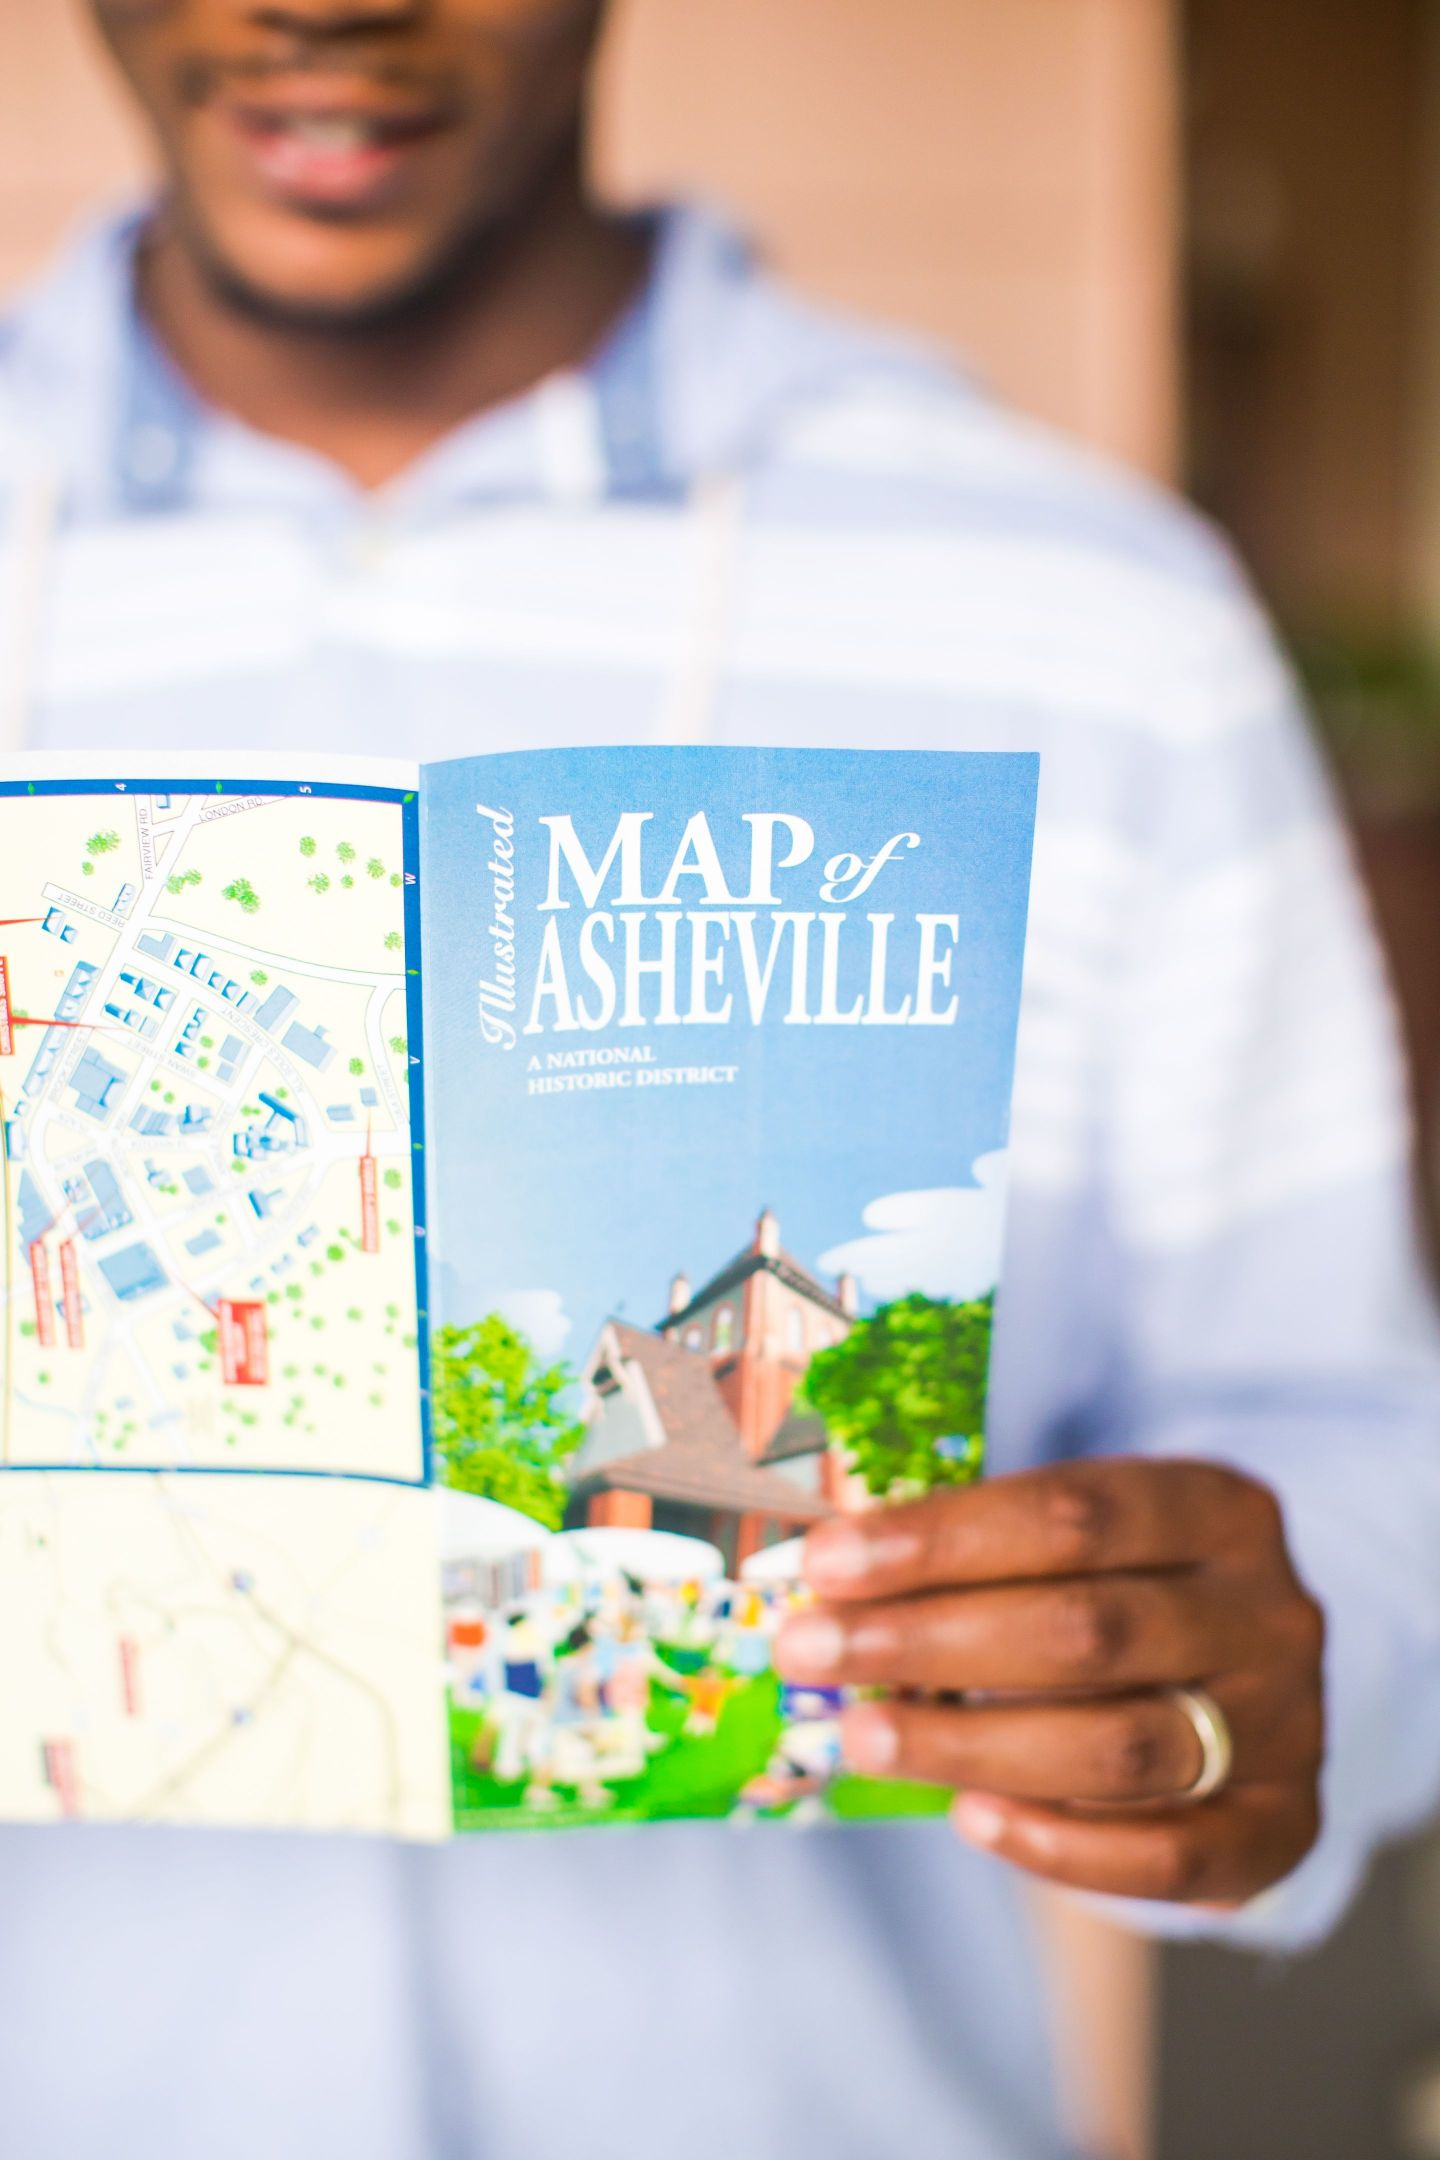 IMG_1413-1-2-1440x2160 Asheville Black Heritage:  African American Heritage Trail Schedules Community Listening Sessions